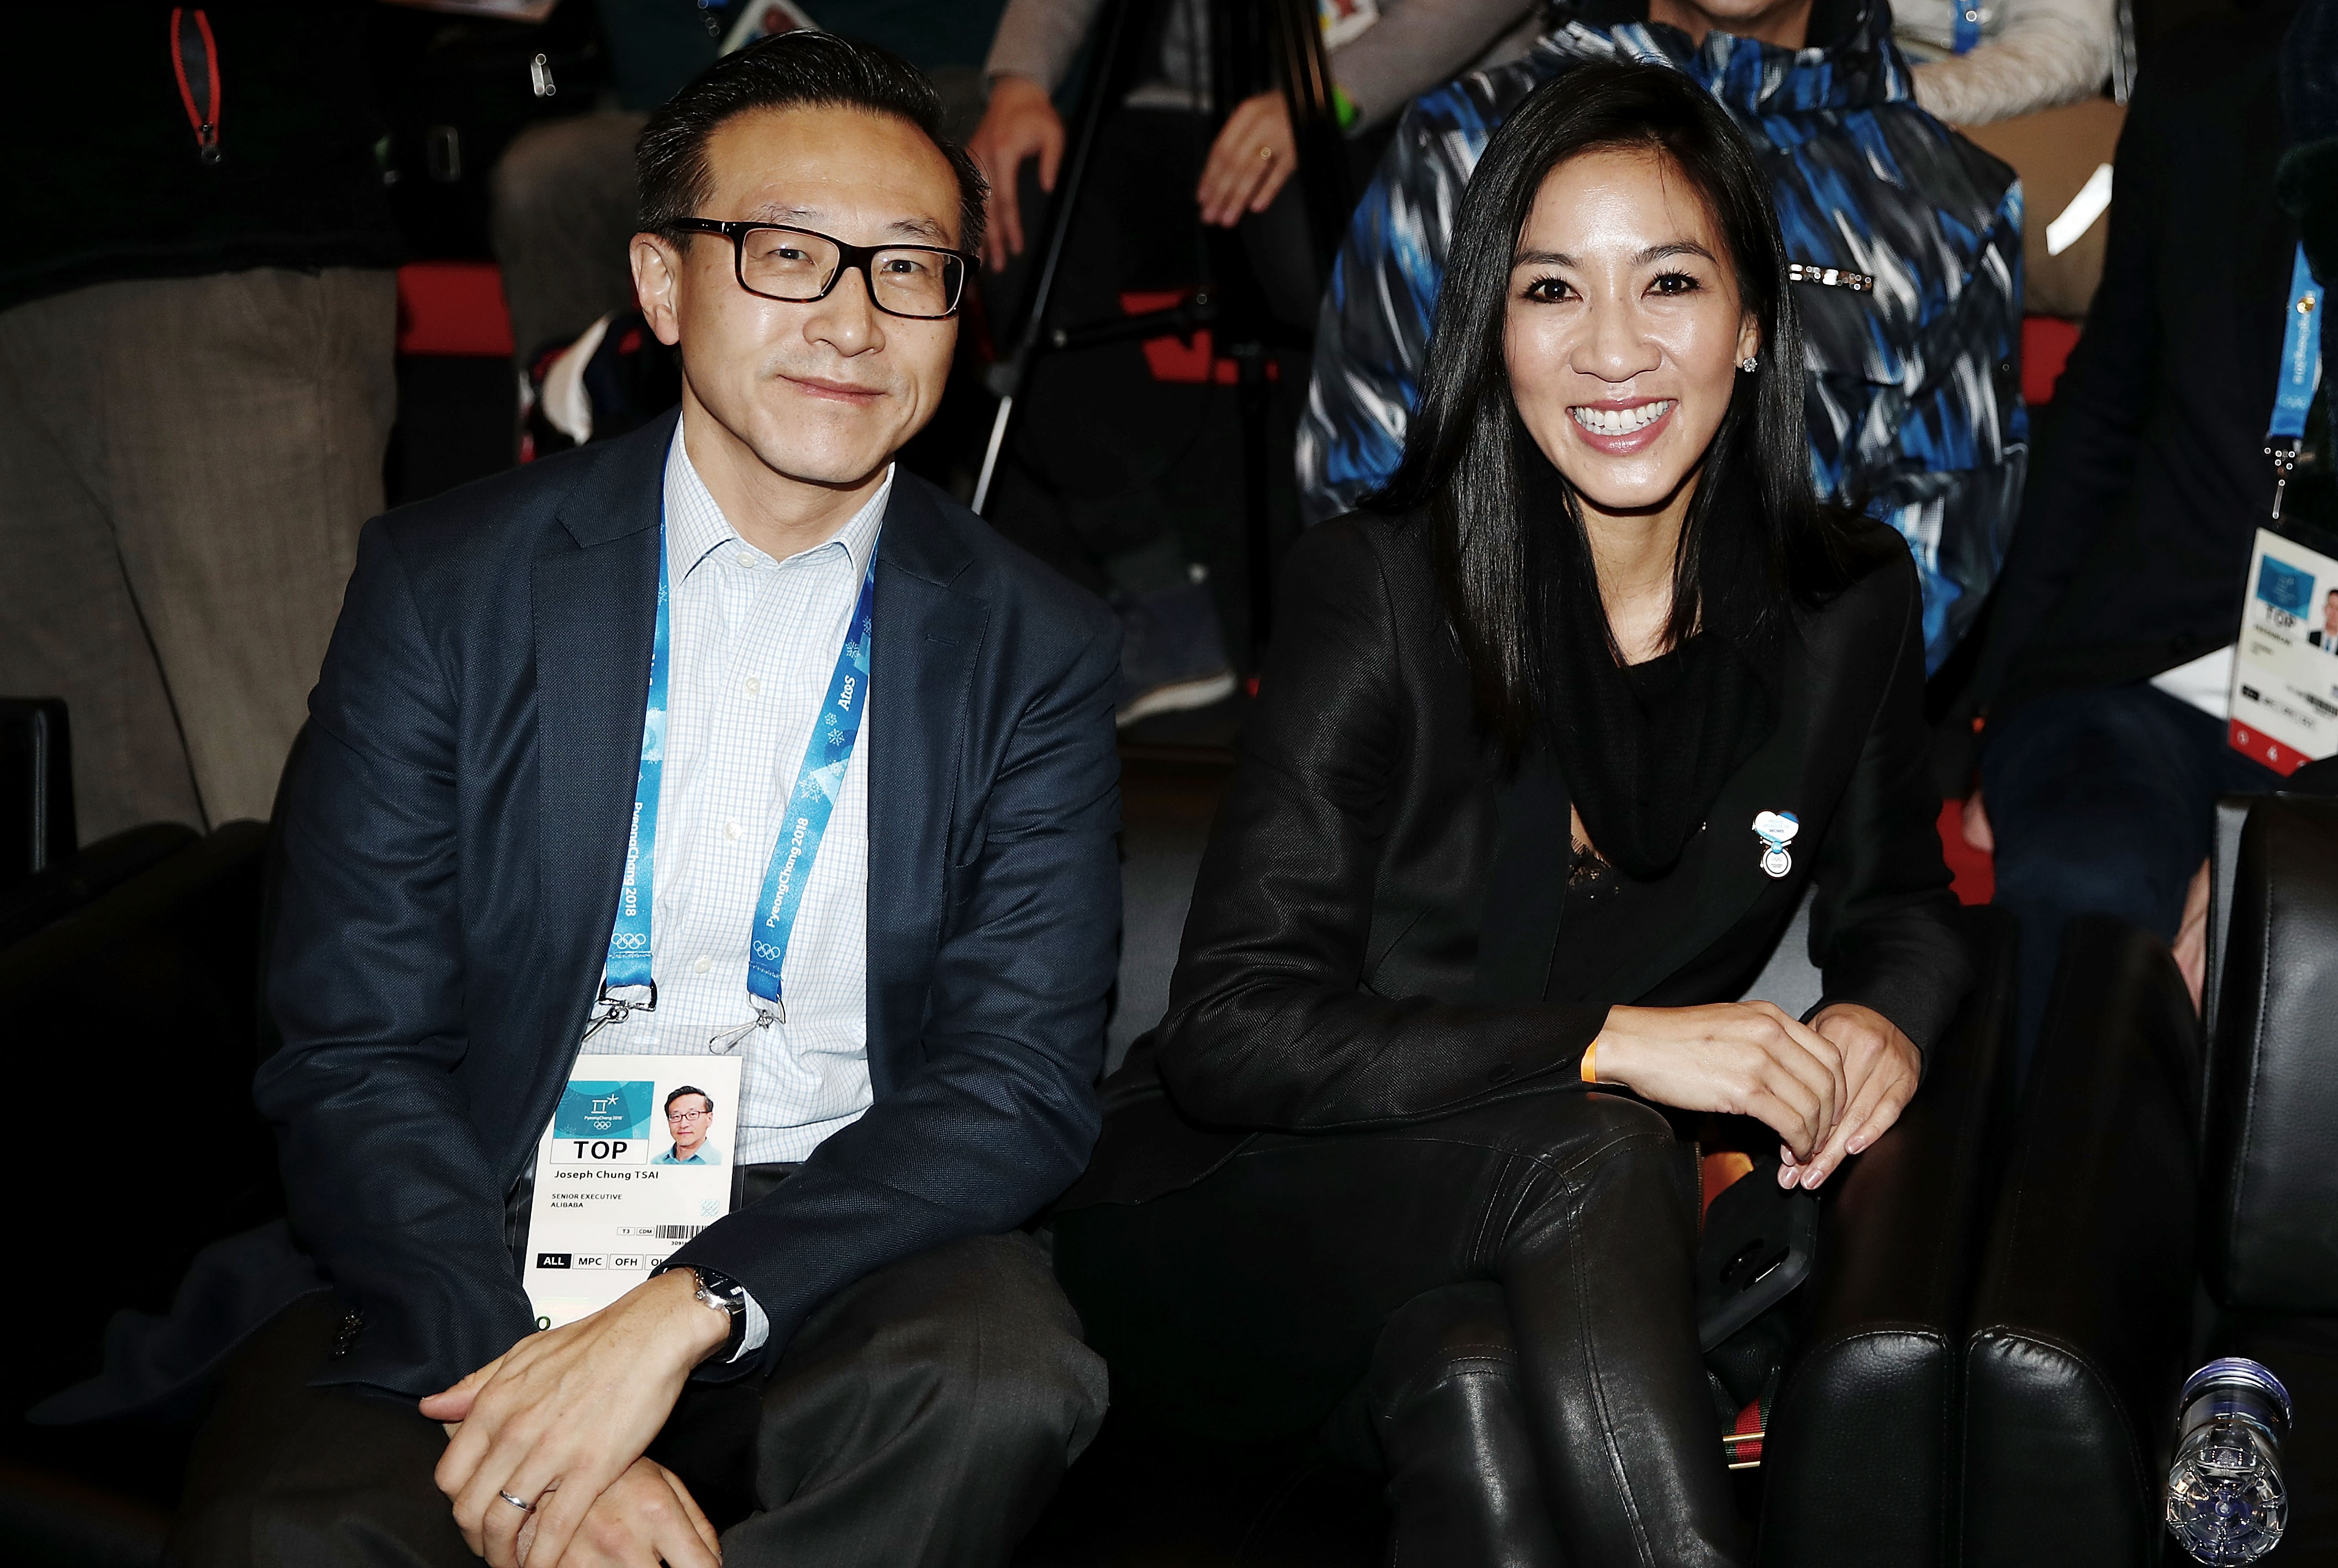 Alibaba co-founder and Executive Vice Chairman Joe Tsai, left, with Olympic figure skater Michelle Kwan